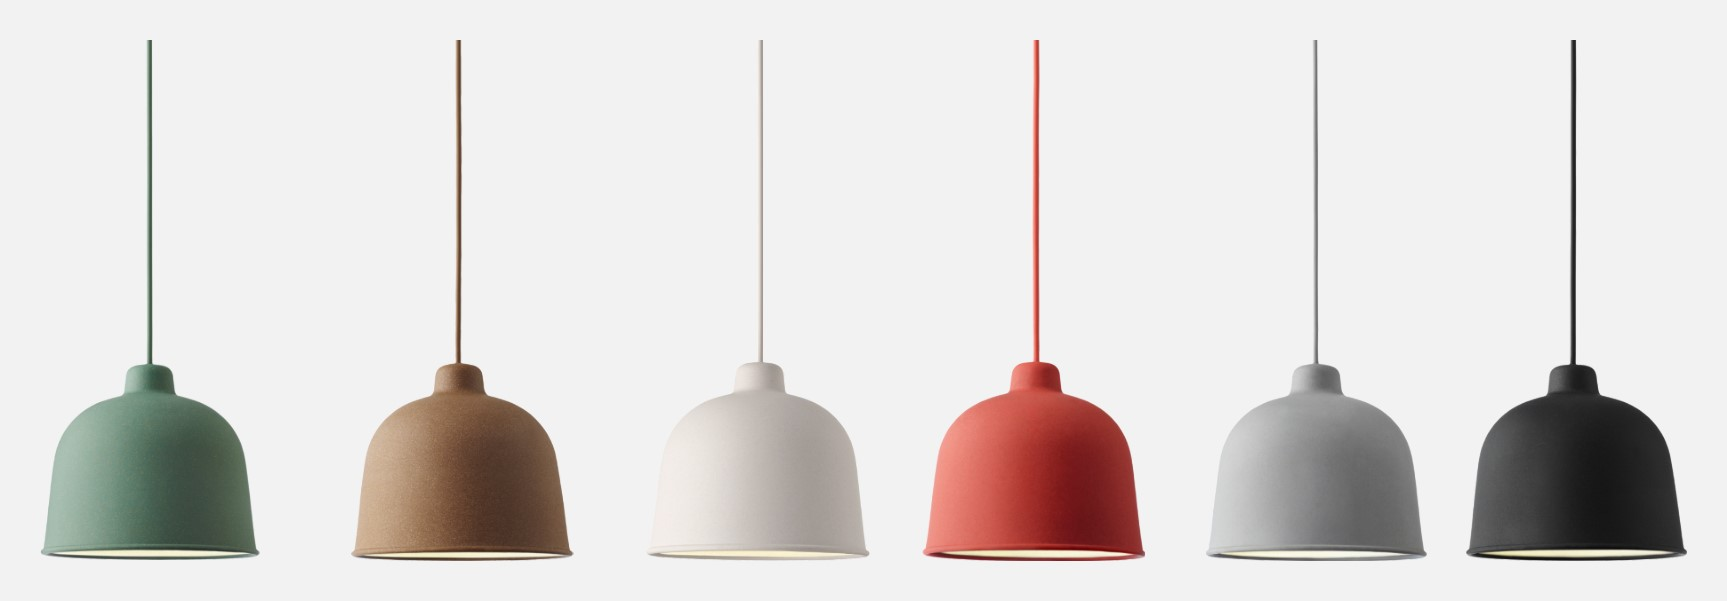 Muuto Grain hanglamp projectinrichting